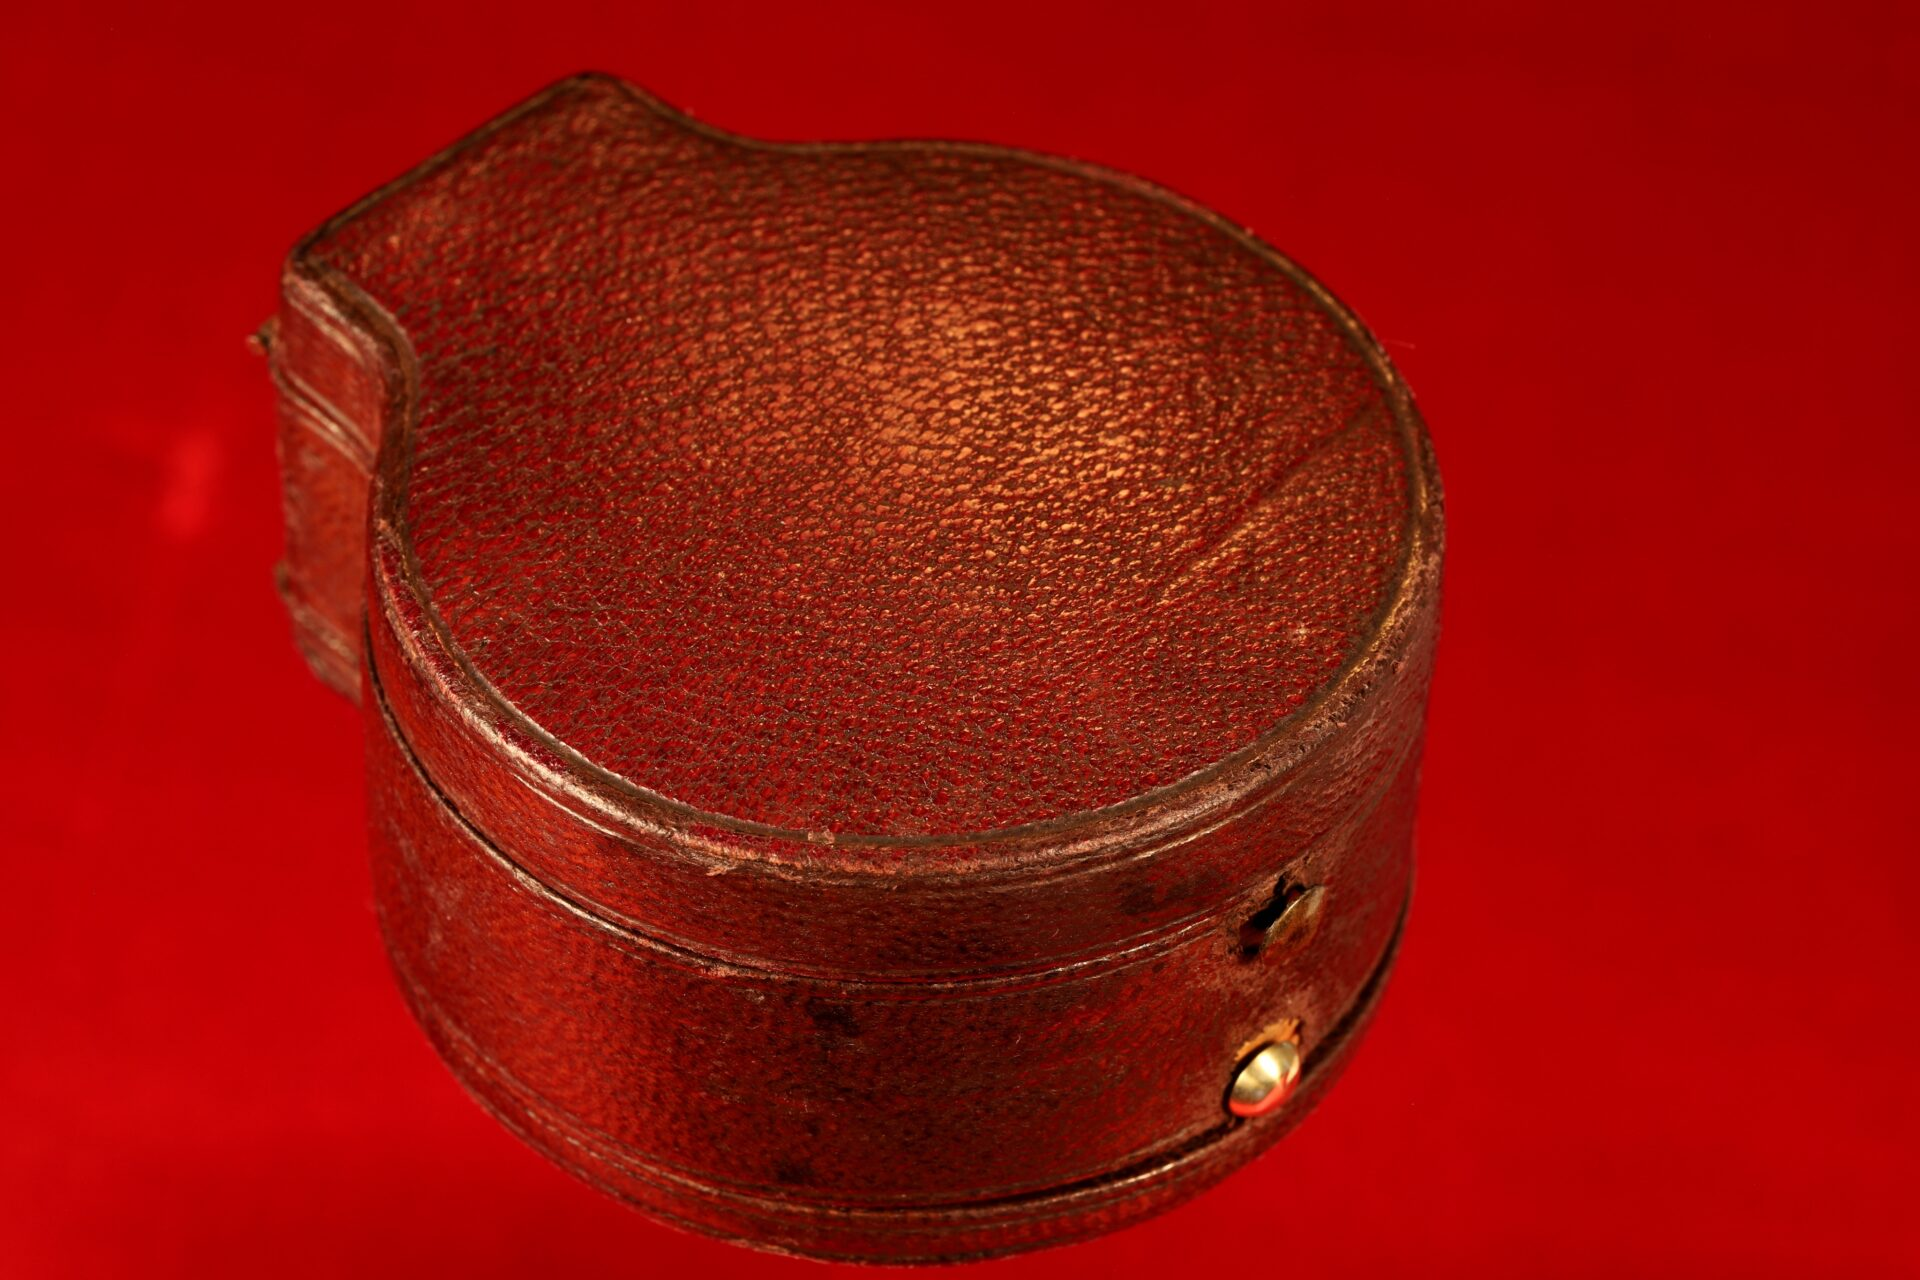 Image of closed case for Army & Navy COSL Pocket Barometer Compendium c1880